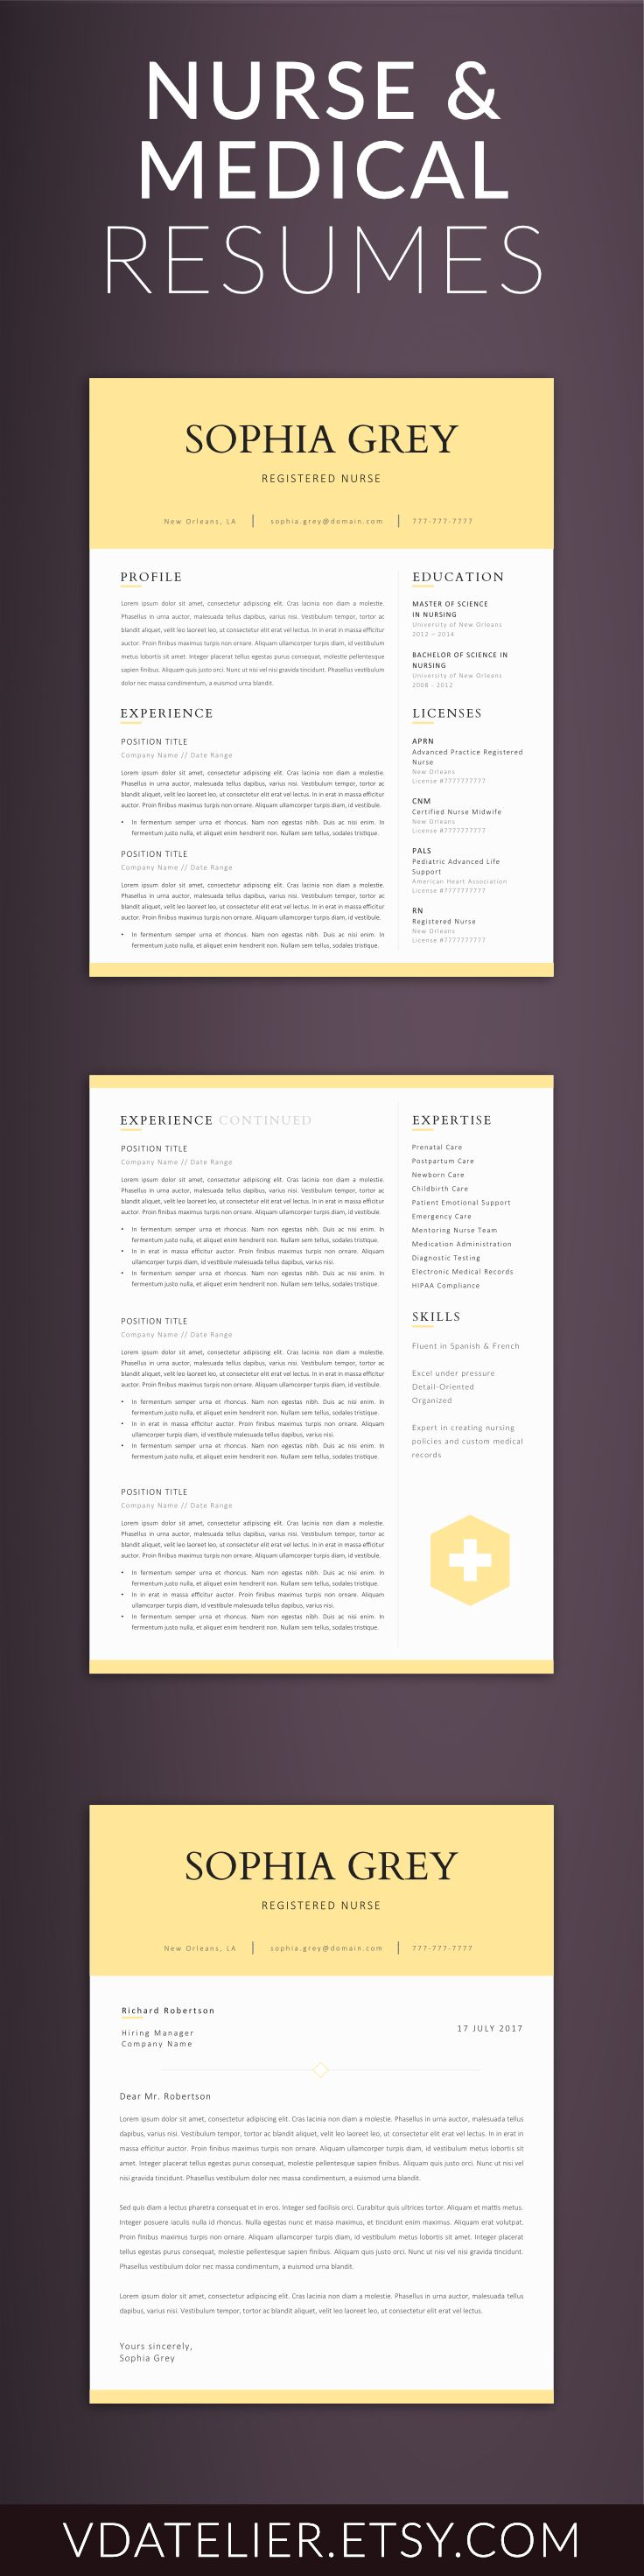 Doctor Resume Template for Word, Nurse Resume Template | Nurse CV Template | RN Resume, Medical Resume | US Letter & A4 | 1,2 Page Resume